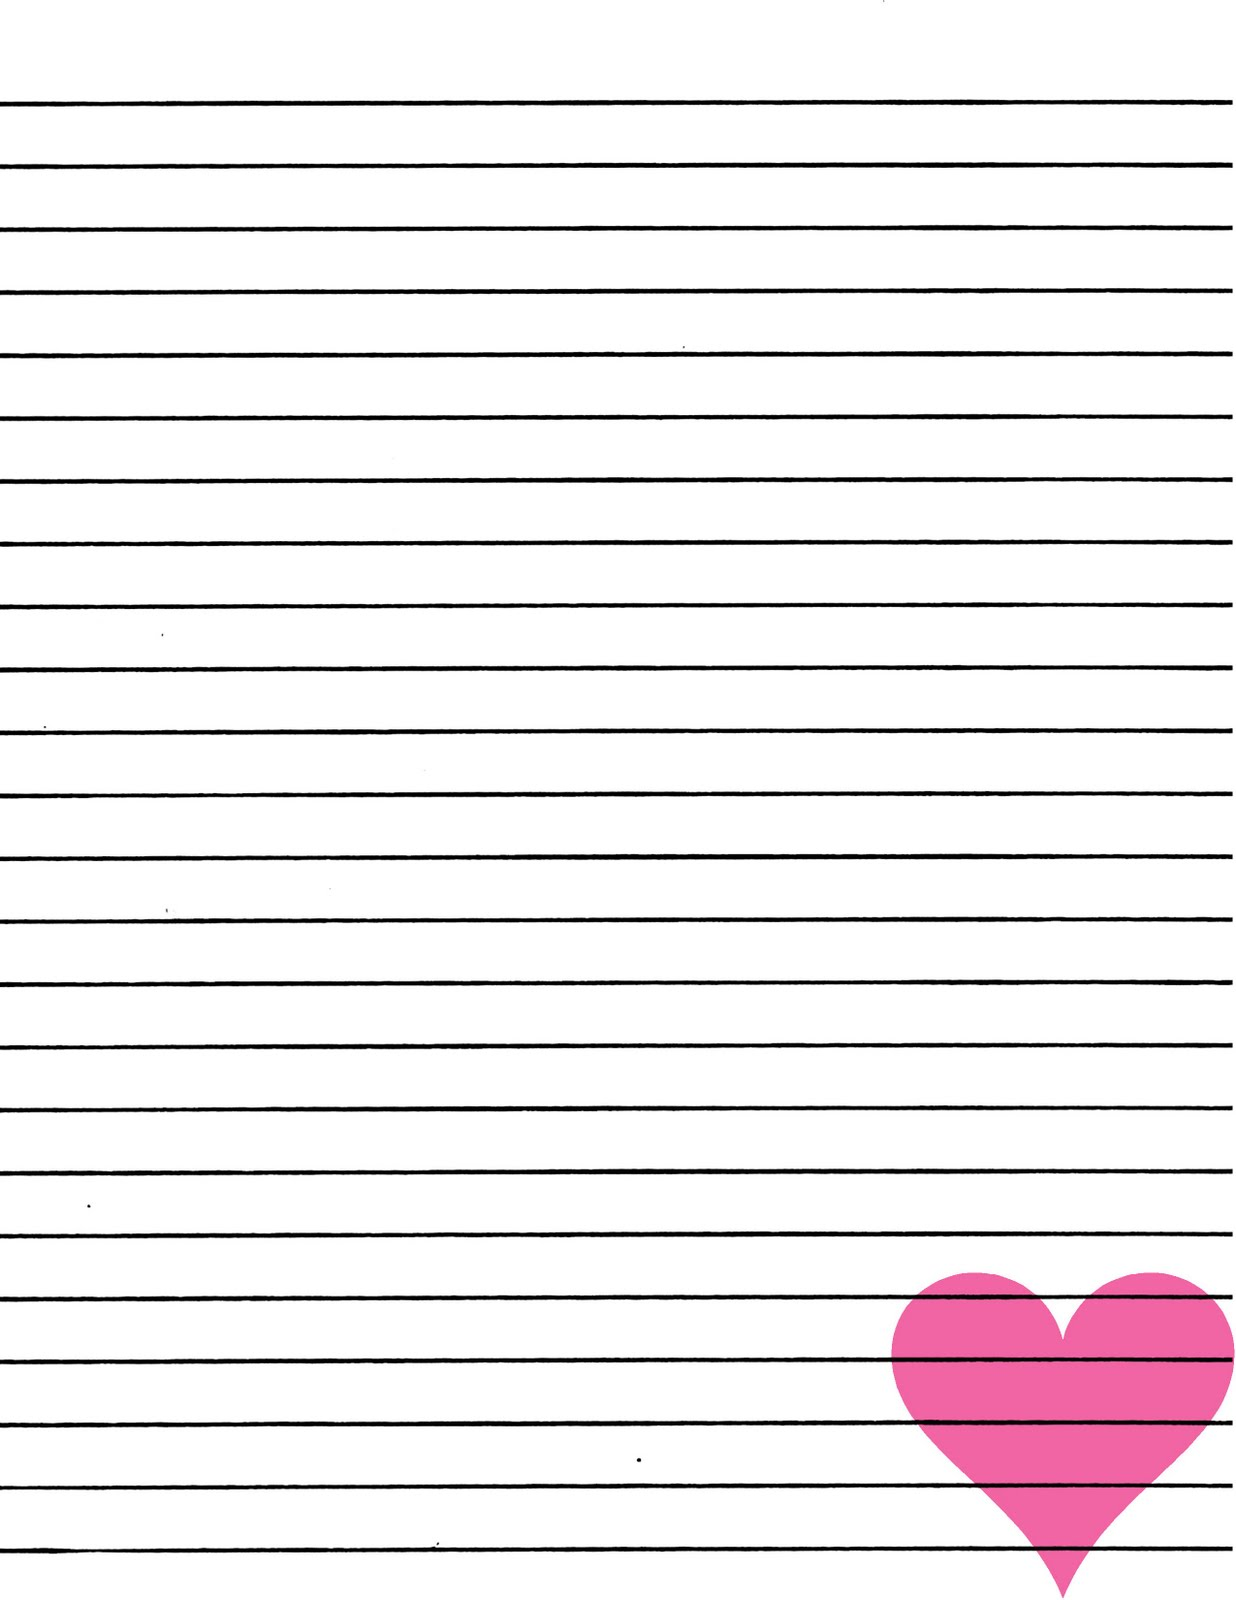 Heart Lined Paper